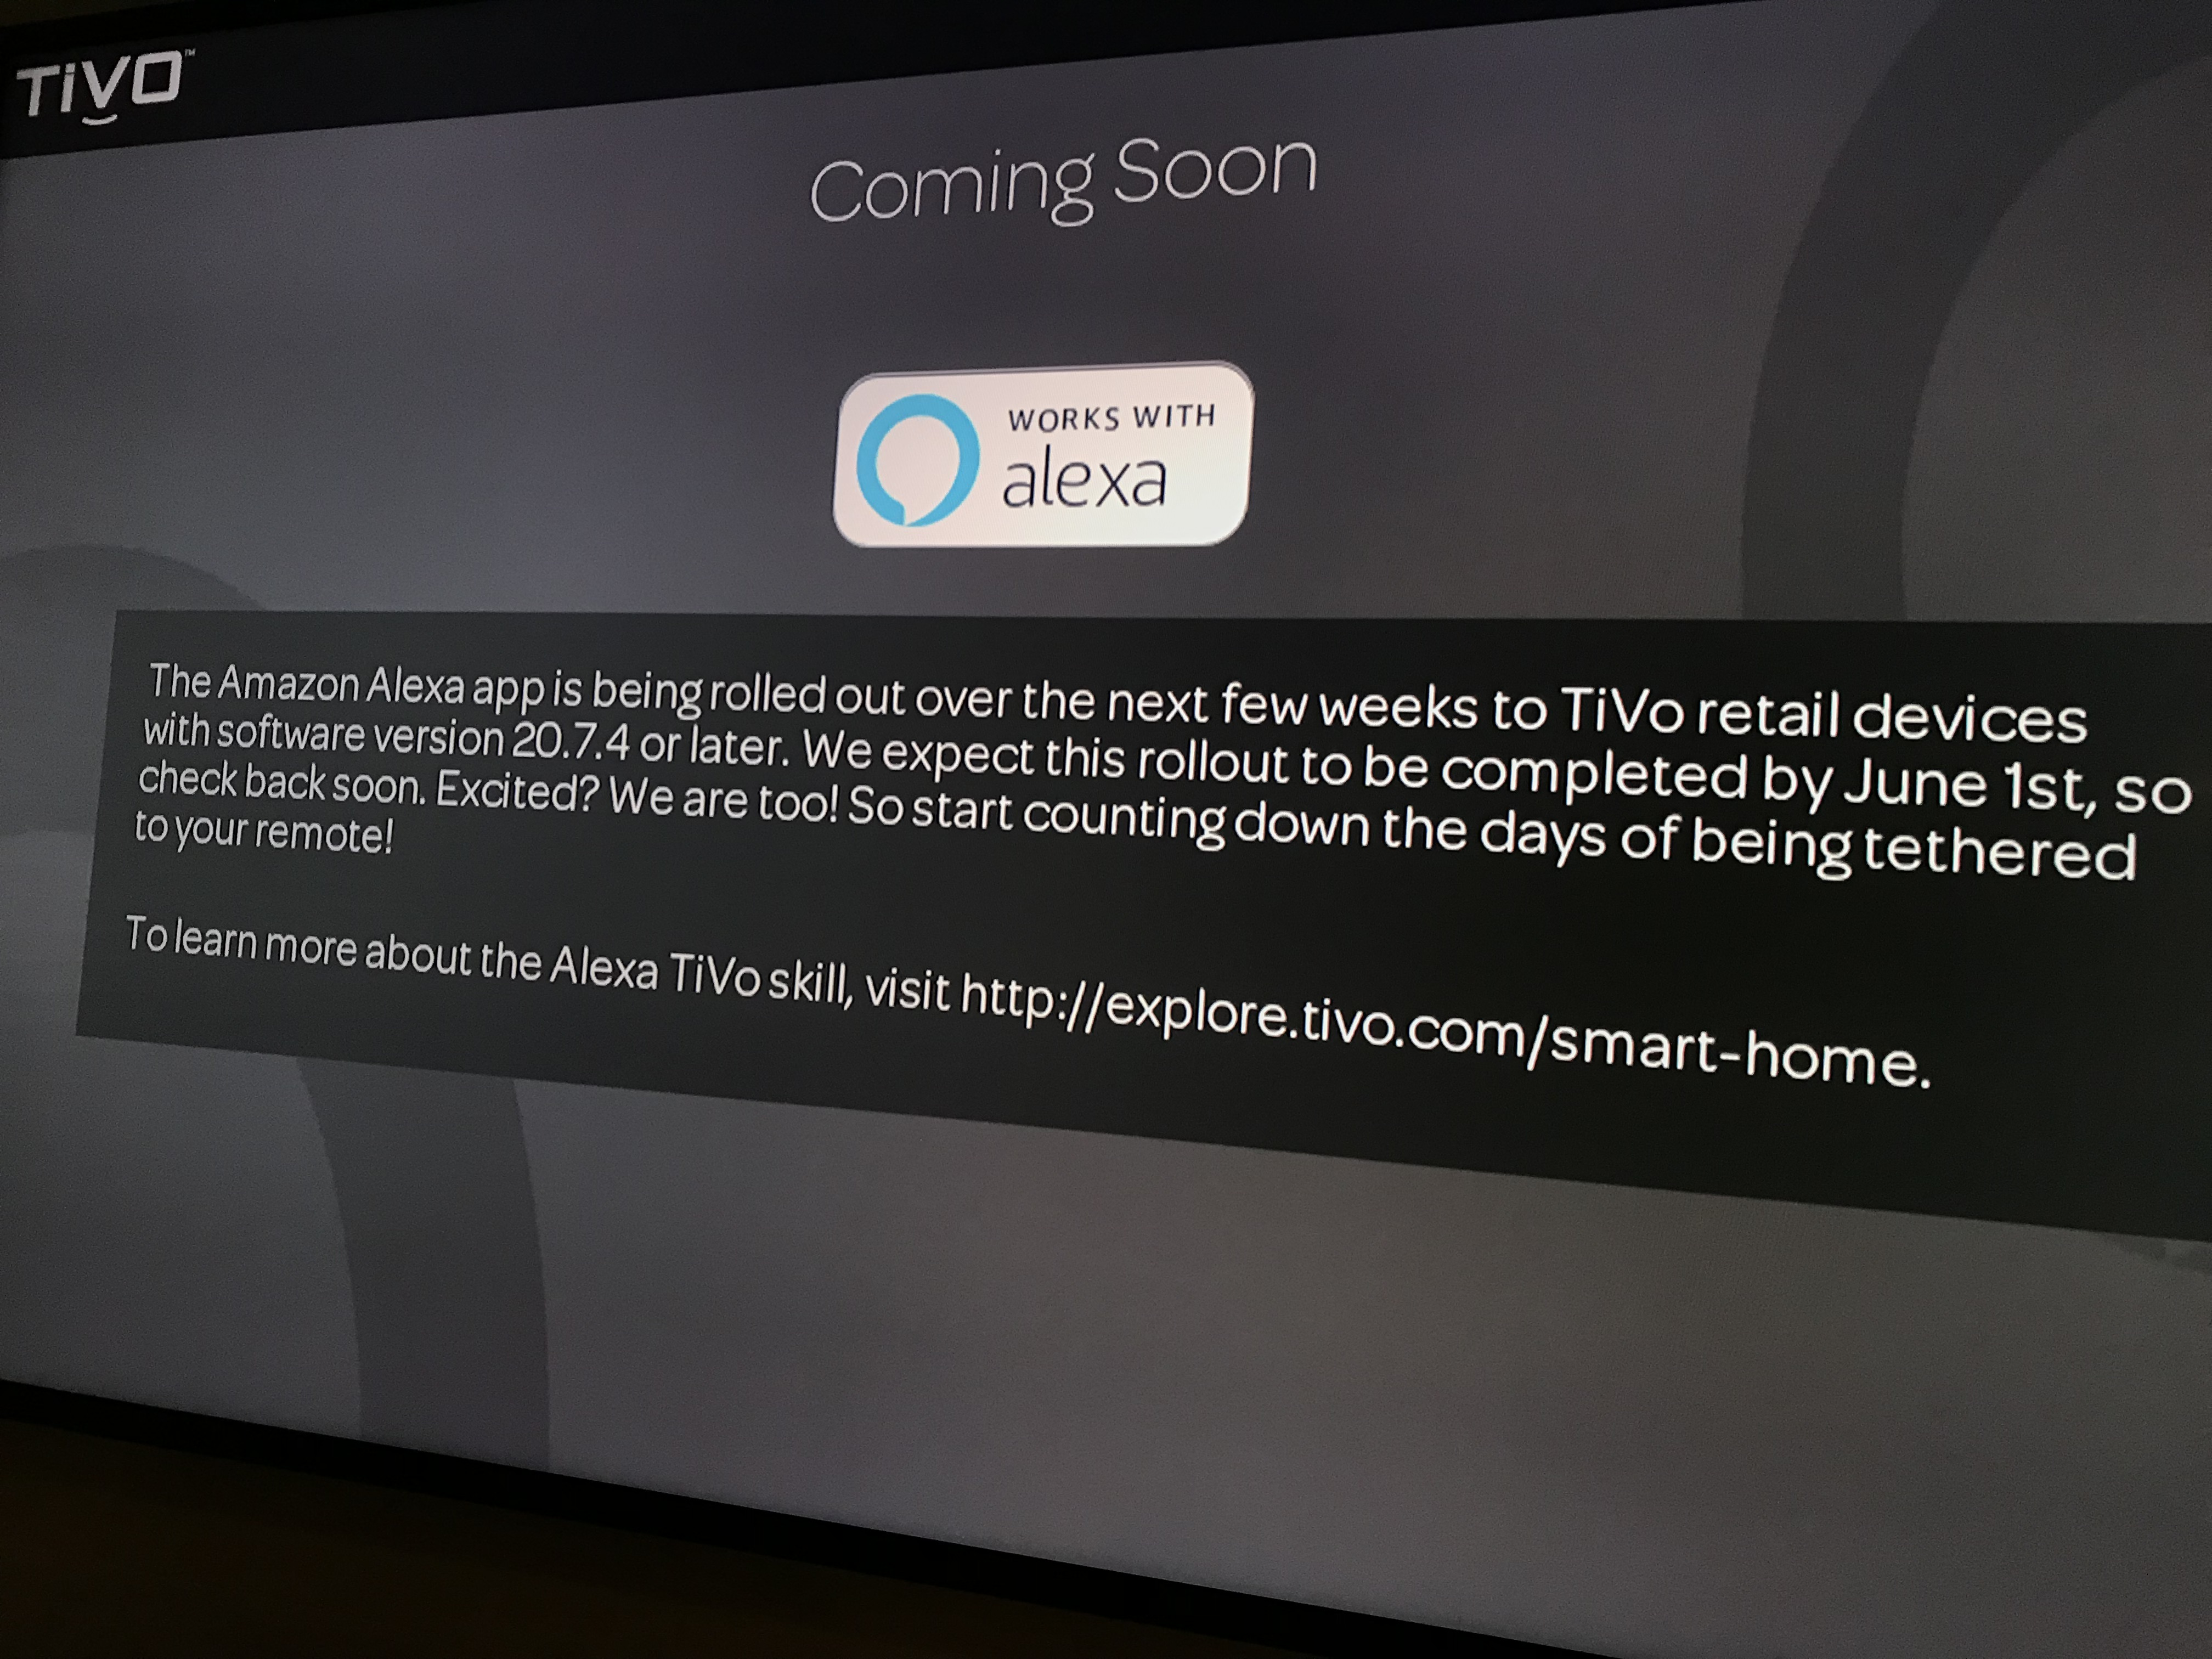 tivo-alexa-coming-soon